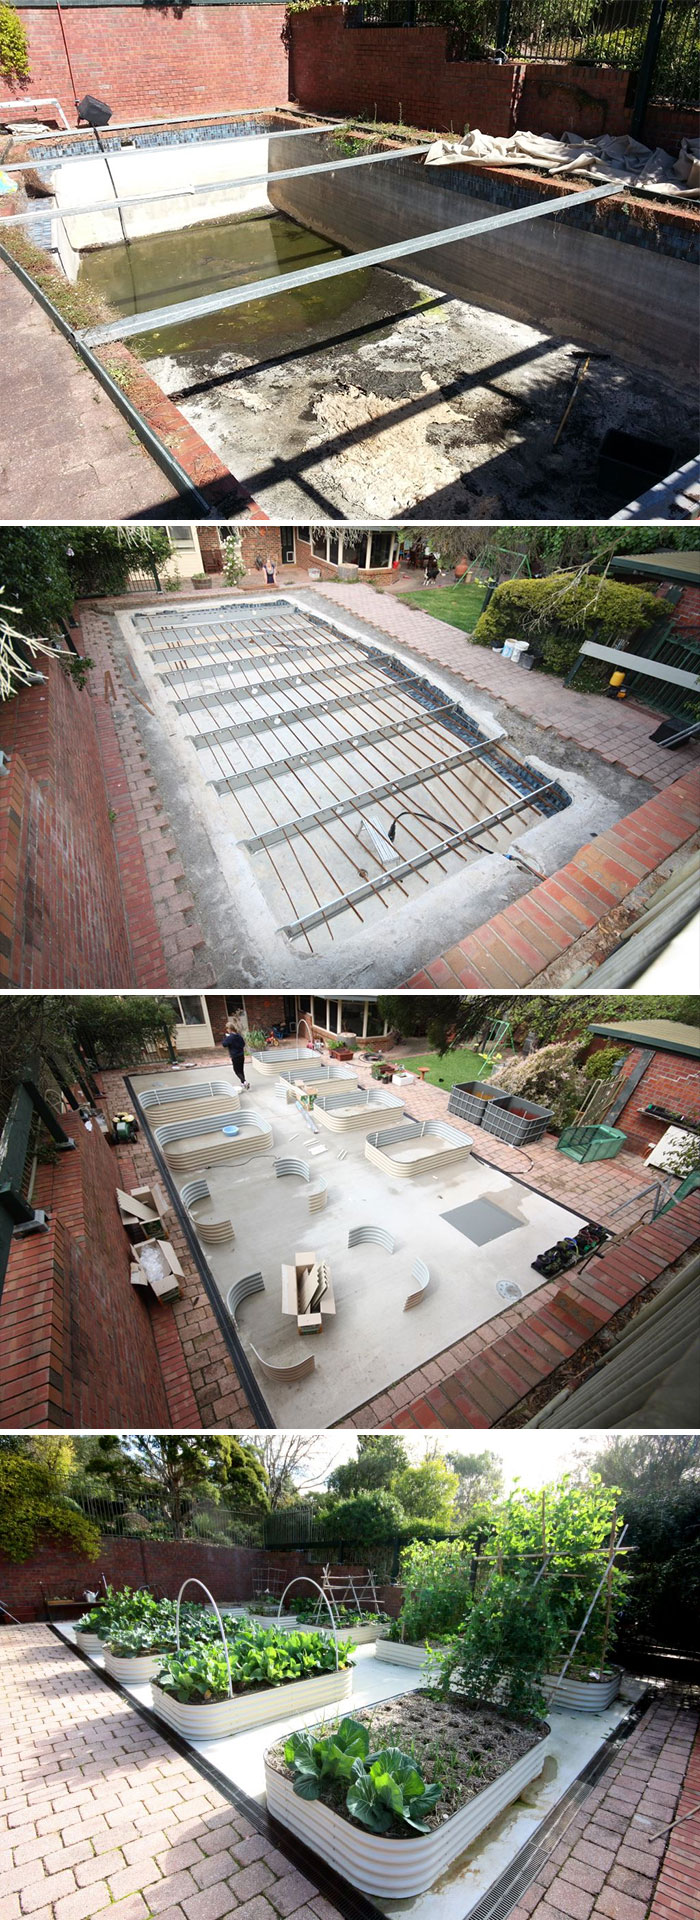 We've Converted Our Pool Into An 80,000l Underground Rainwater Tank With Raised Vegetable Garden Beds On Top